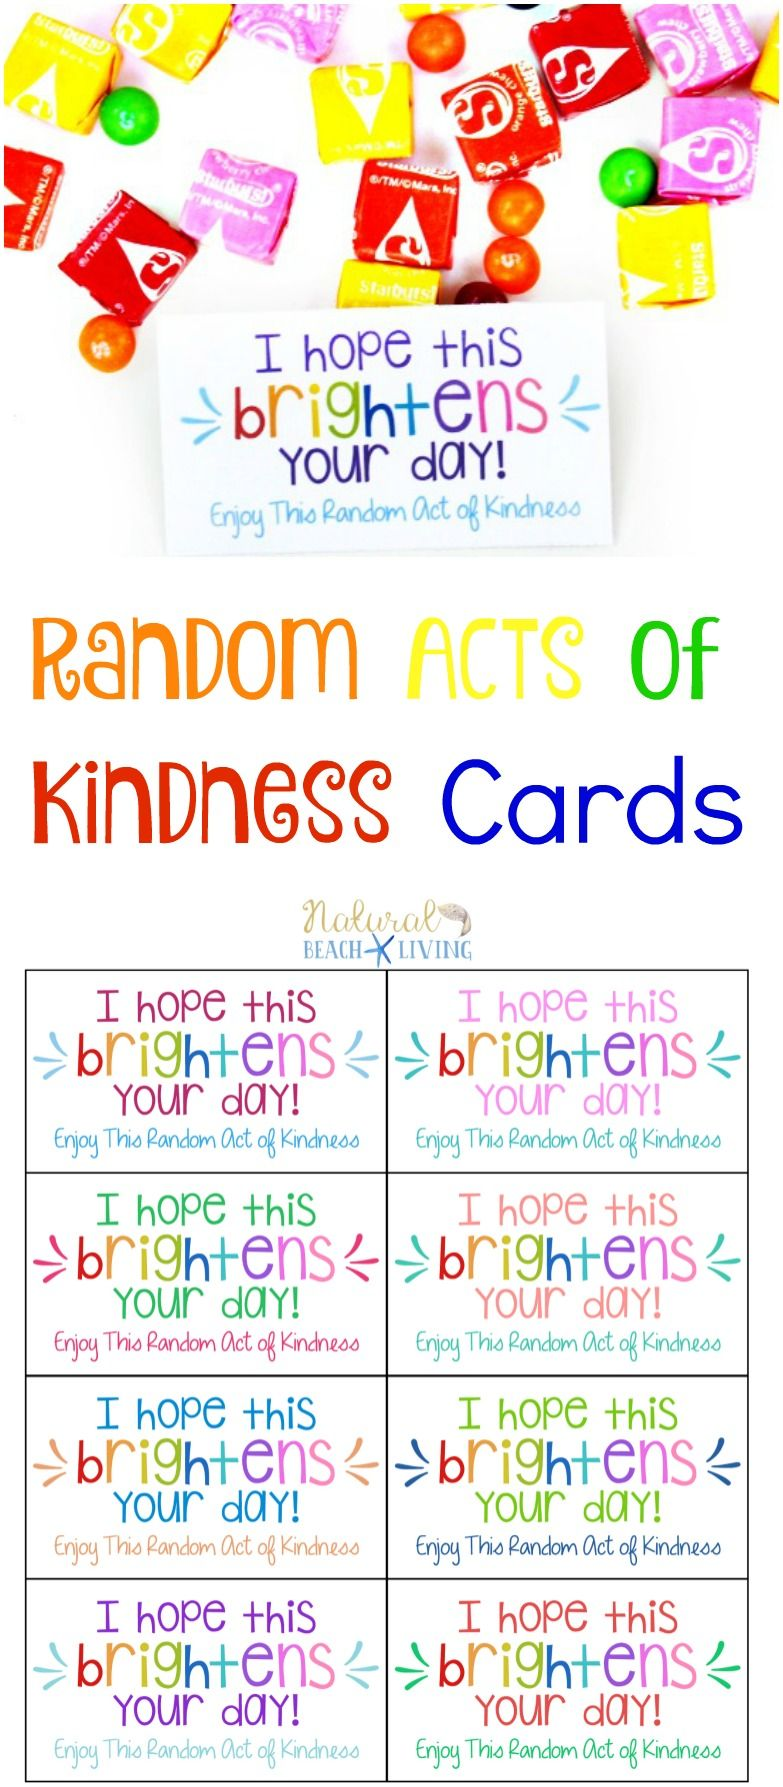 101 Of The Best Random Acts Of Kindness Ideas Kindness Gifts Kindness Notes Kindness Activities